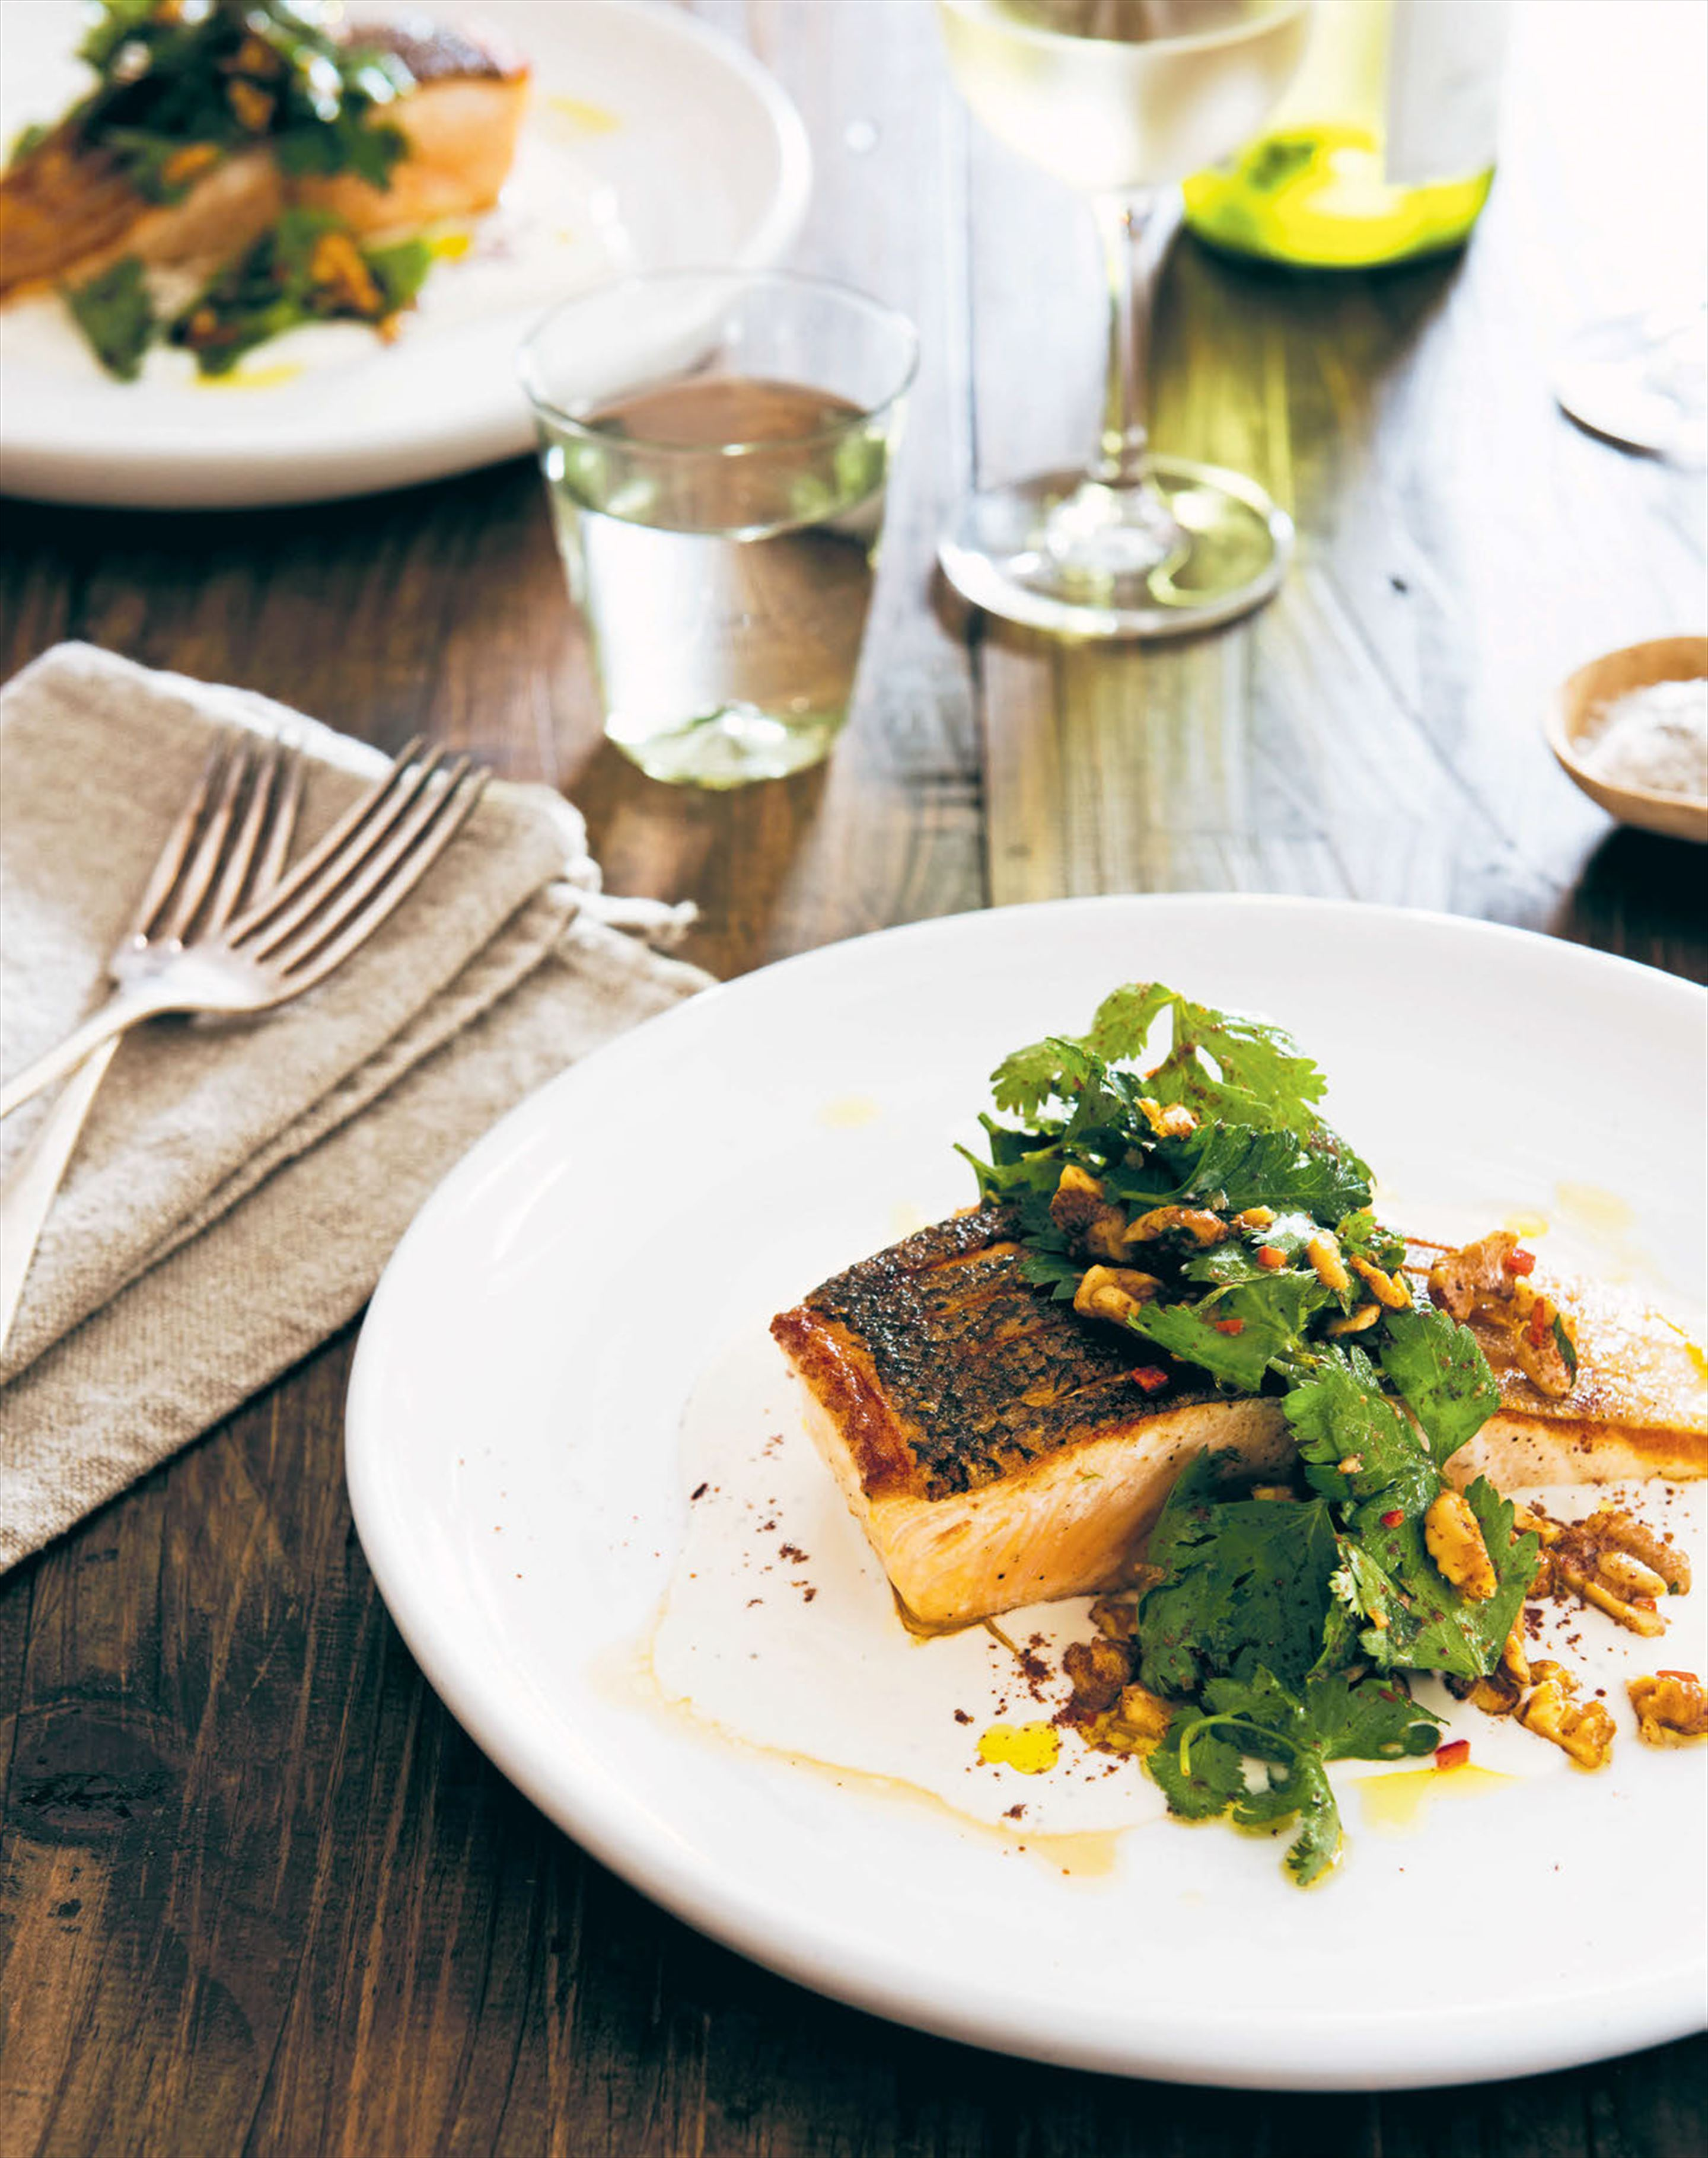 Pan-fried salmon with tahini dressing & walnut tarator